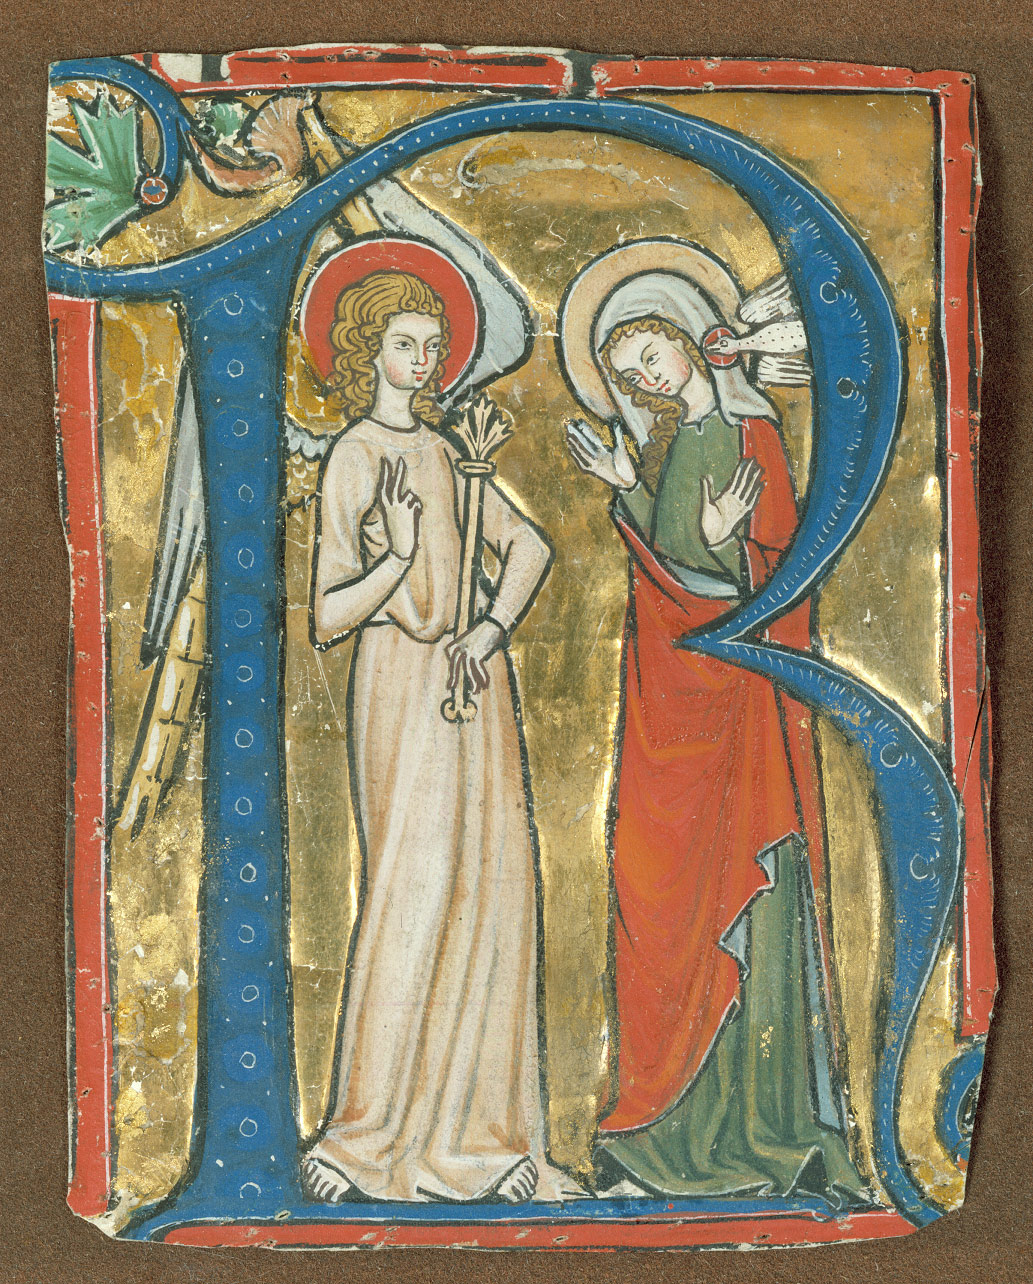 Manuscript Illumination With The Annunciation In An